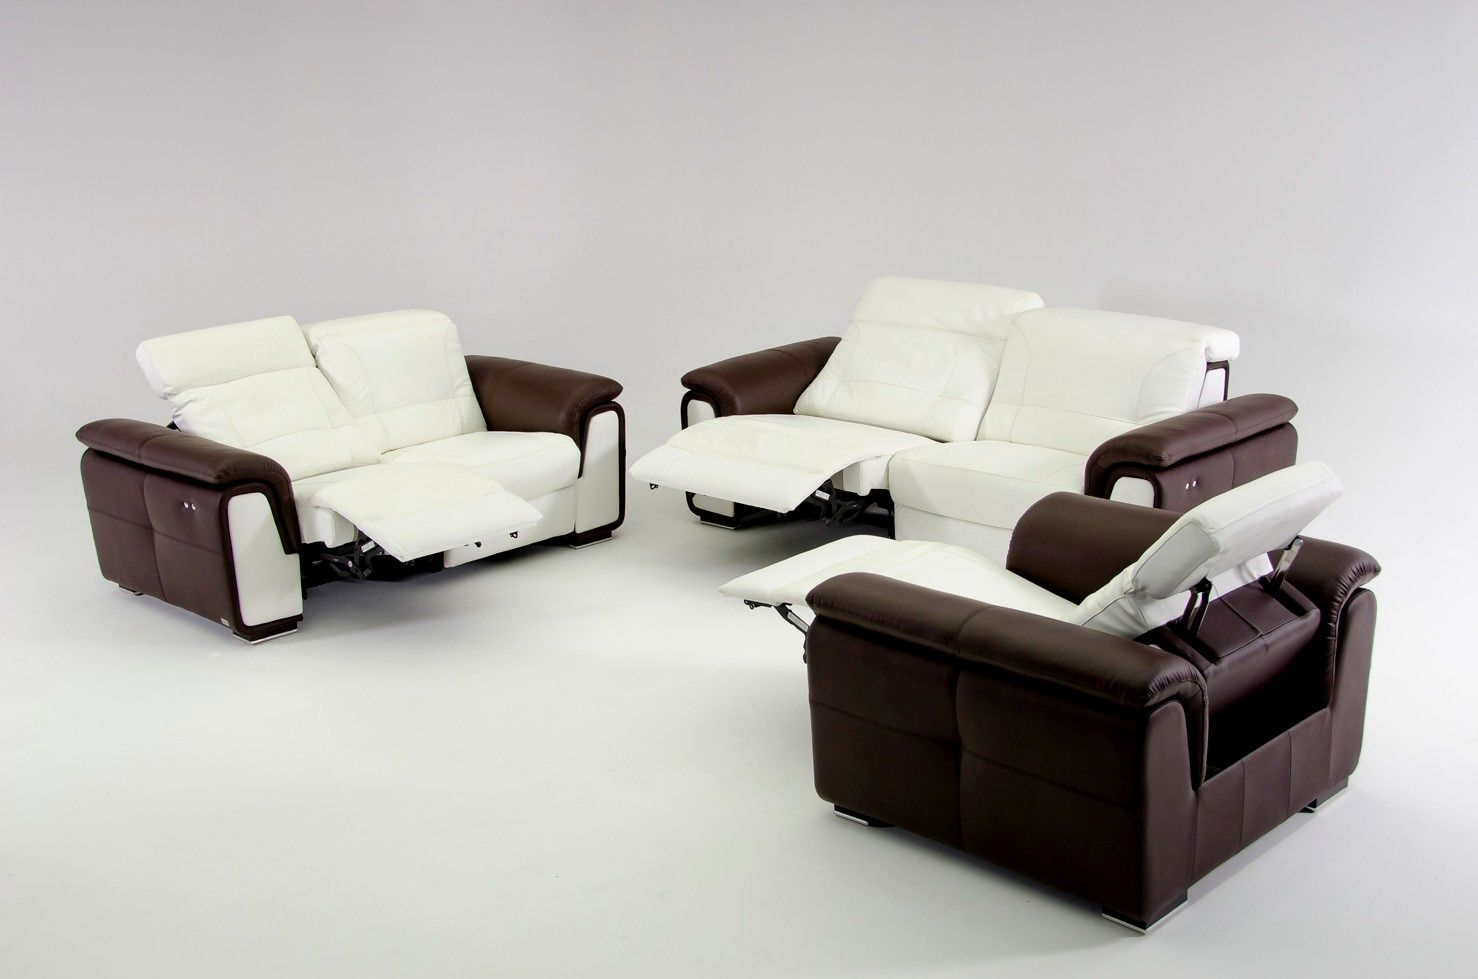 superb leather reclining sofa architecture-Unique Leather Reclining sofa Wallpaper